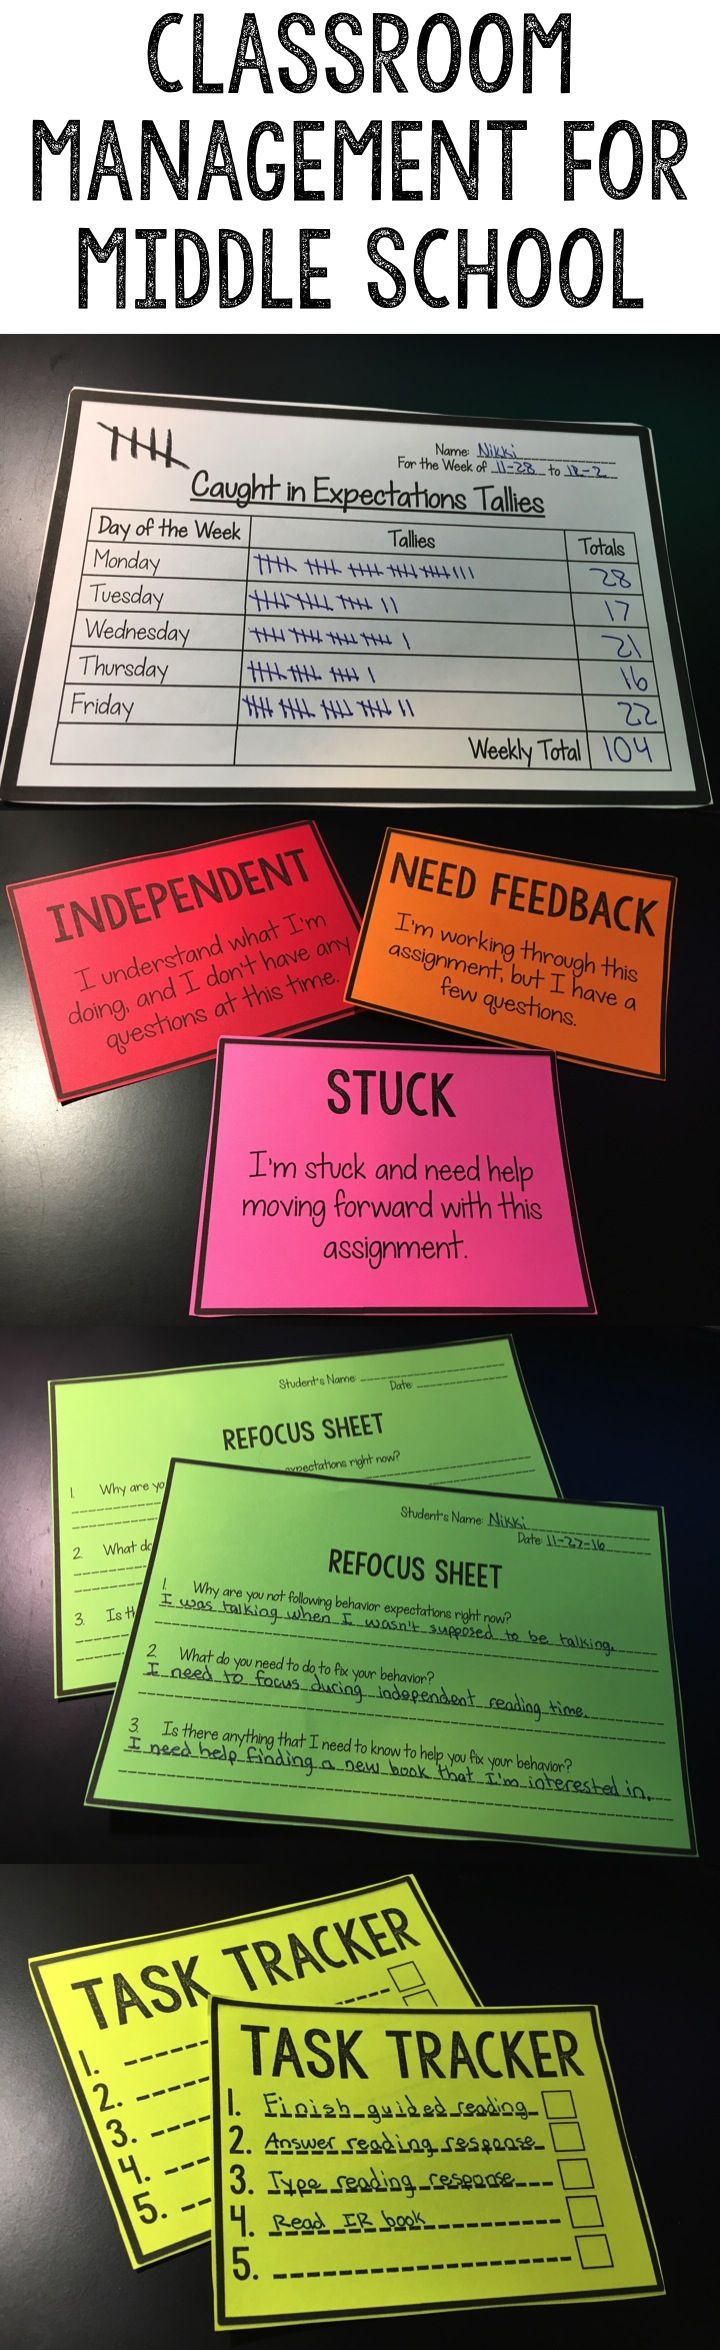 Classroom Management Ideas Middle School ~ The best behavior cards ideas on pinterest